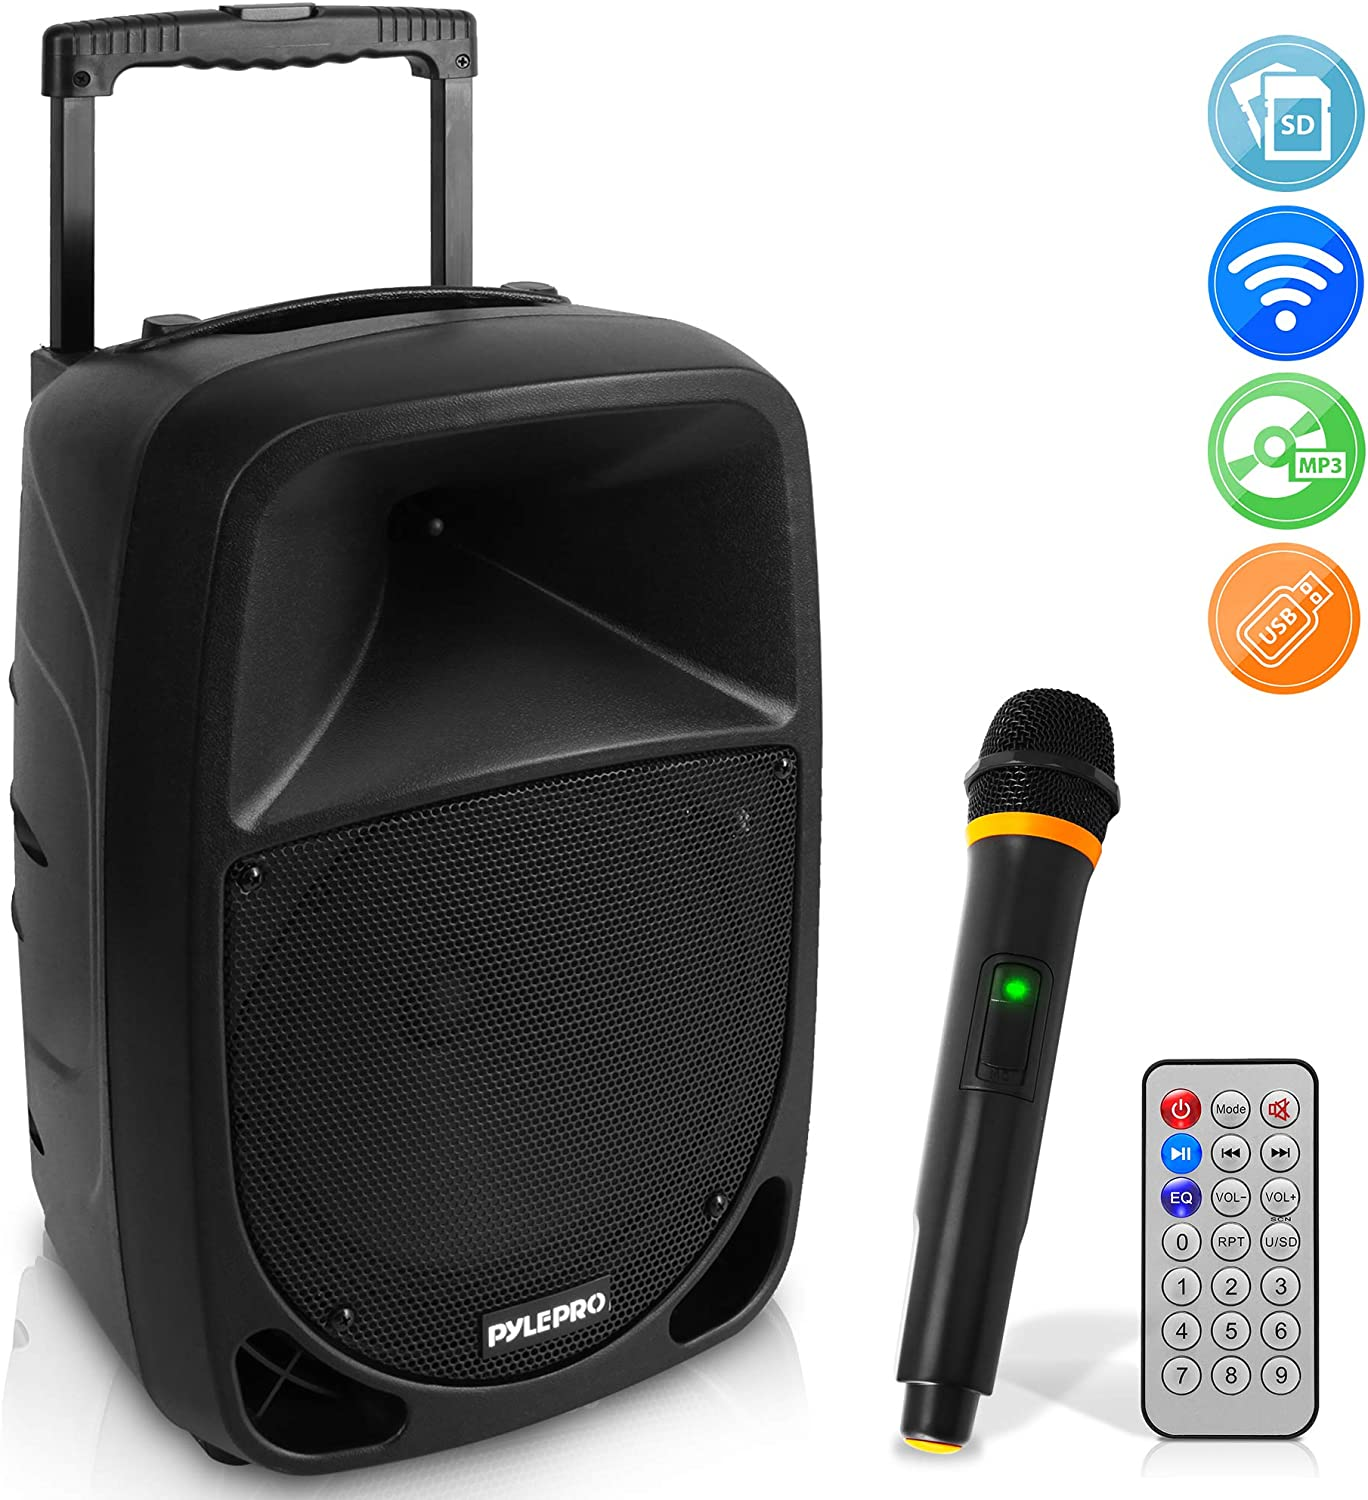 Pyle 1000W Portable Bluetooth PA Speaker - 10'' Karaoke Speaker System with UHF Wireless Microphone, Remote Control & Built-in Rechargeable Battery, MP3/USB/SD, LED Battery Indicator Lights - PSBT105A